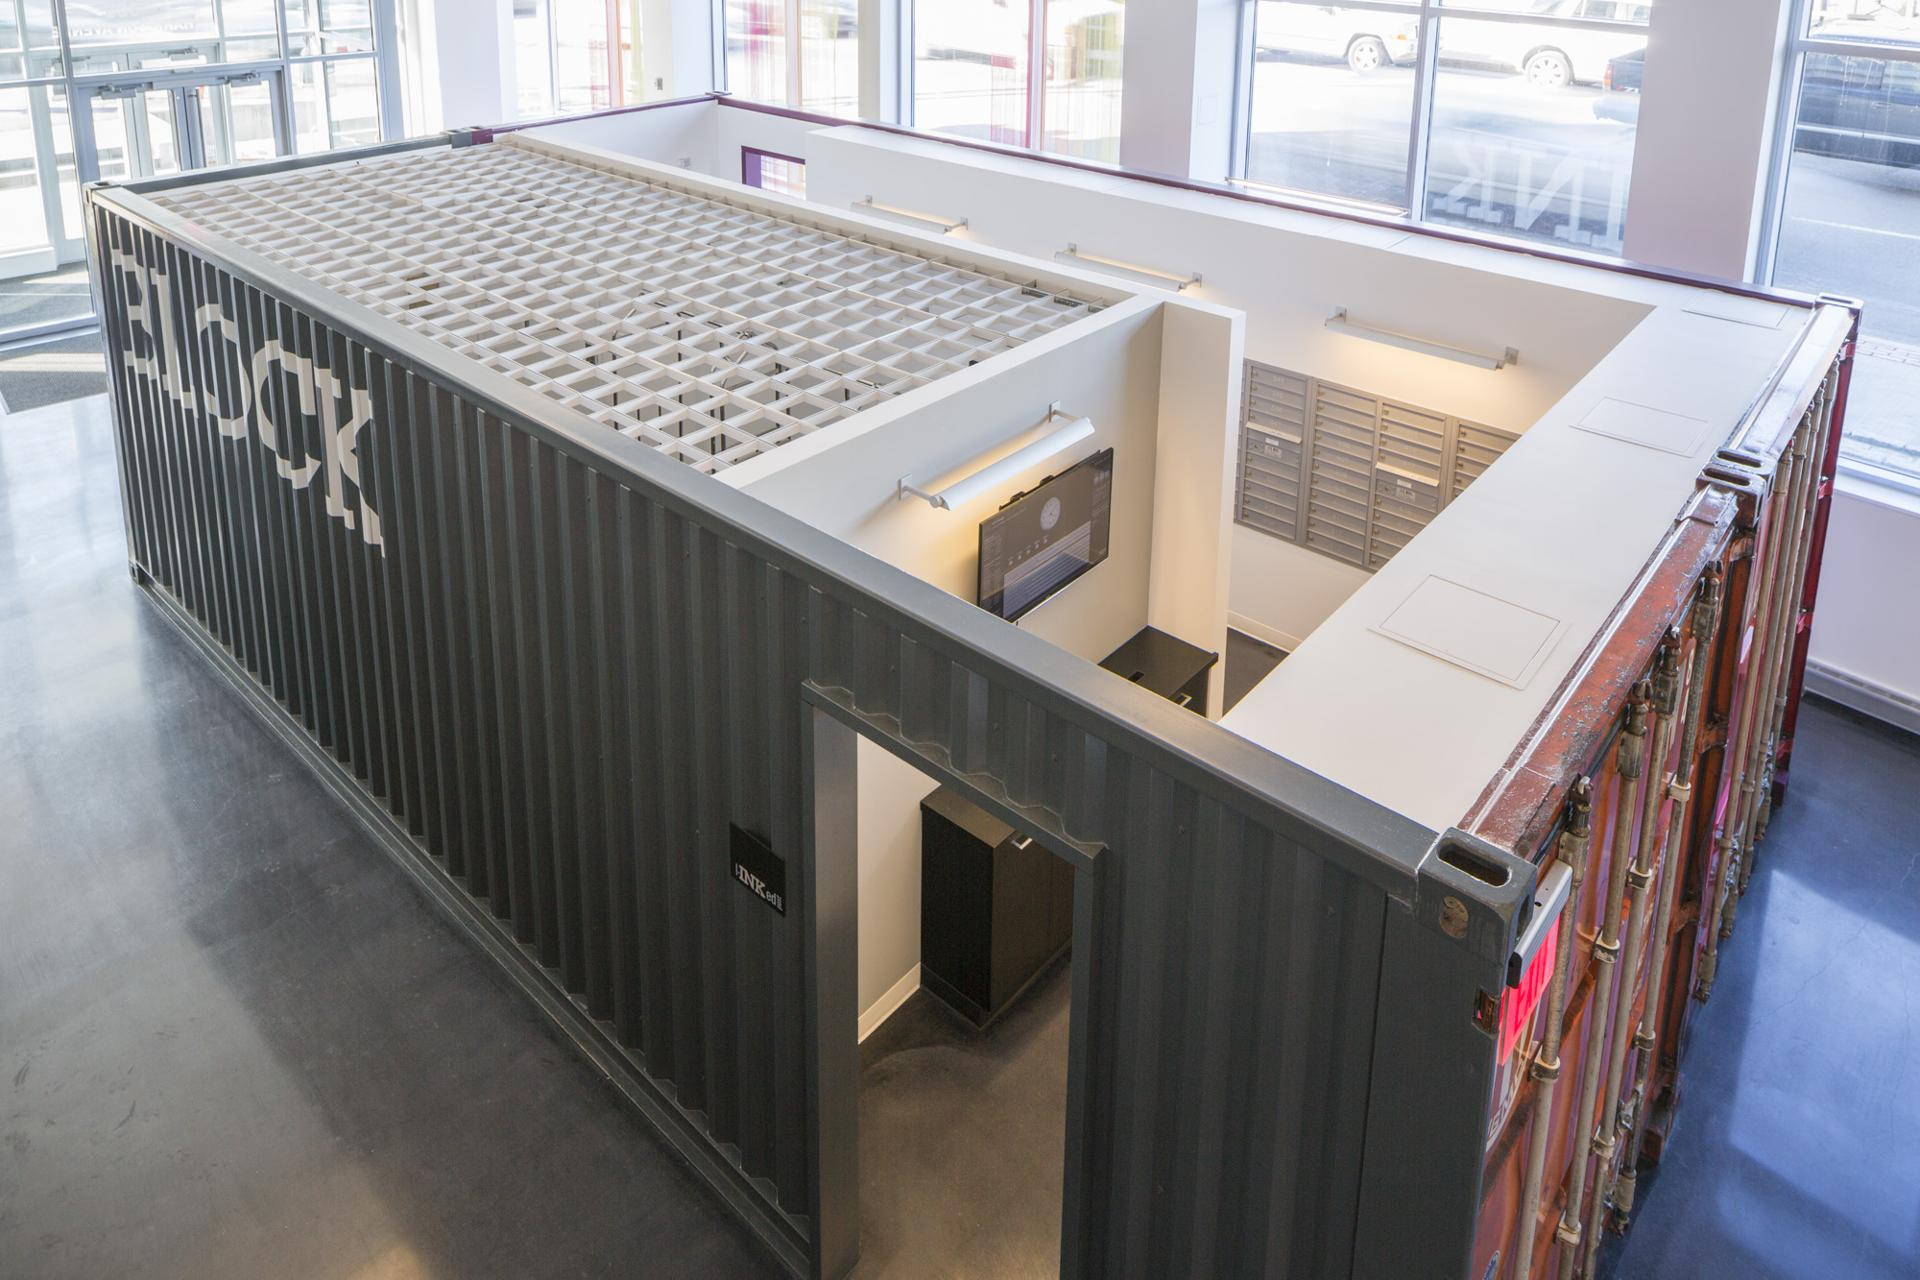 repurposed shipping containers spread across boston - the boston globe